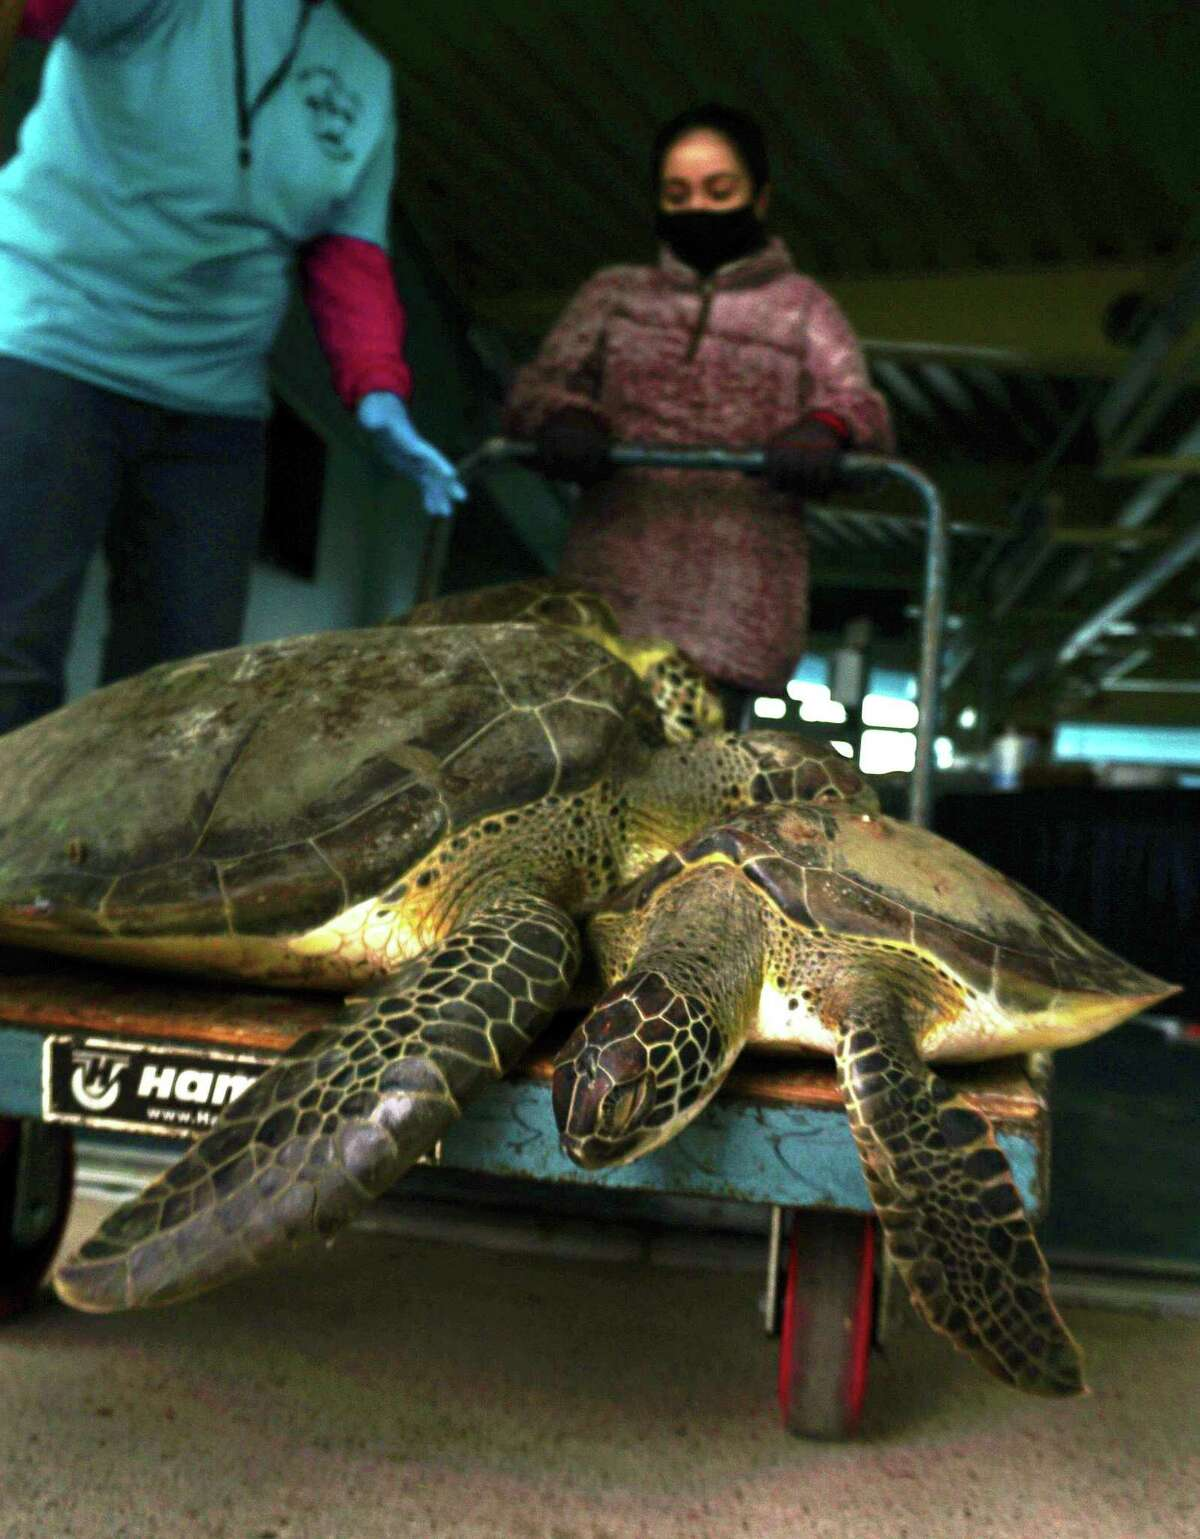 A volunteer gently transports cold stunned sea turtles Tuesday, Feb. 16, 2021 into the recovery area at the South Padre Island Convention Center on South Padre Island. (Miguel Roberts/The Brownsville Herald via AP)